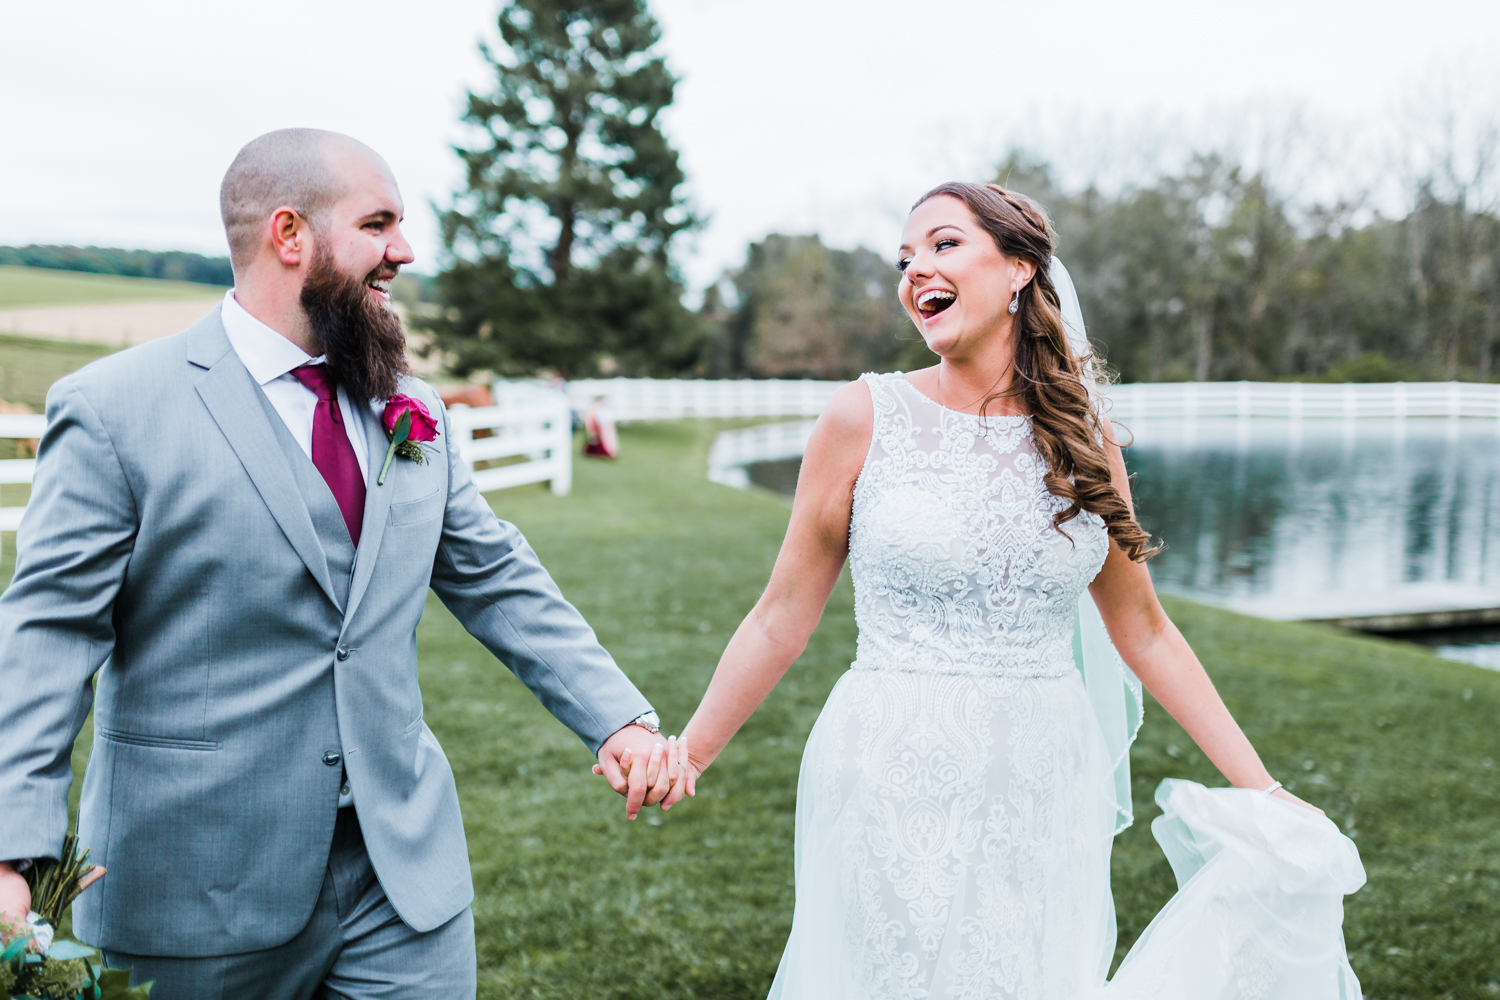 Bride laughing with her groom - MD private and secluded wedding venues